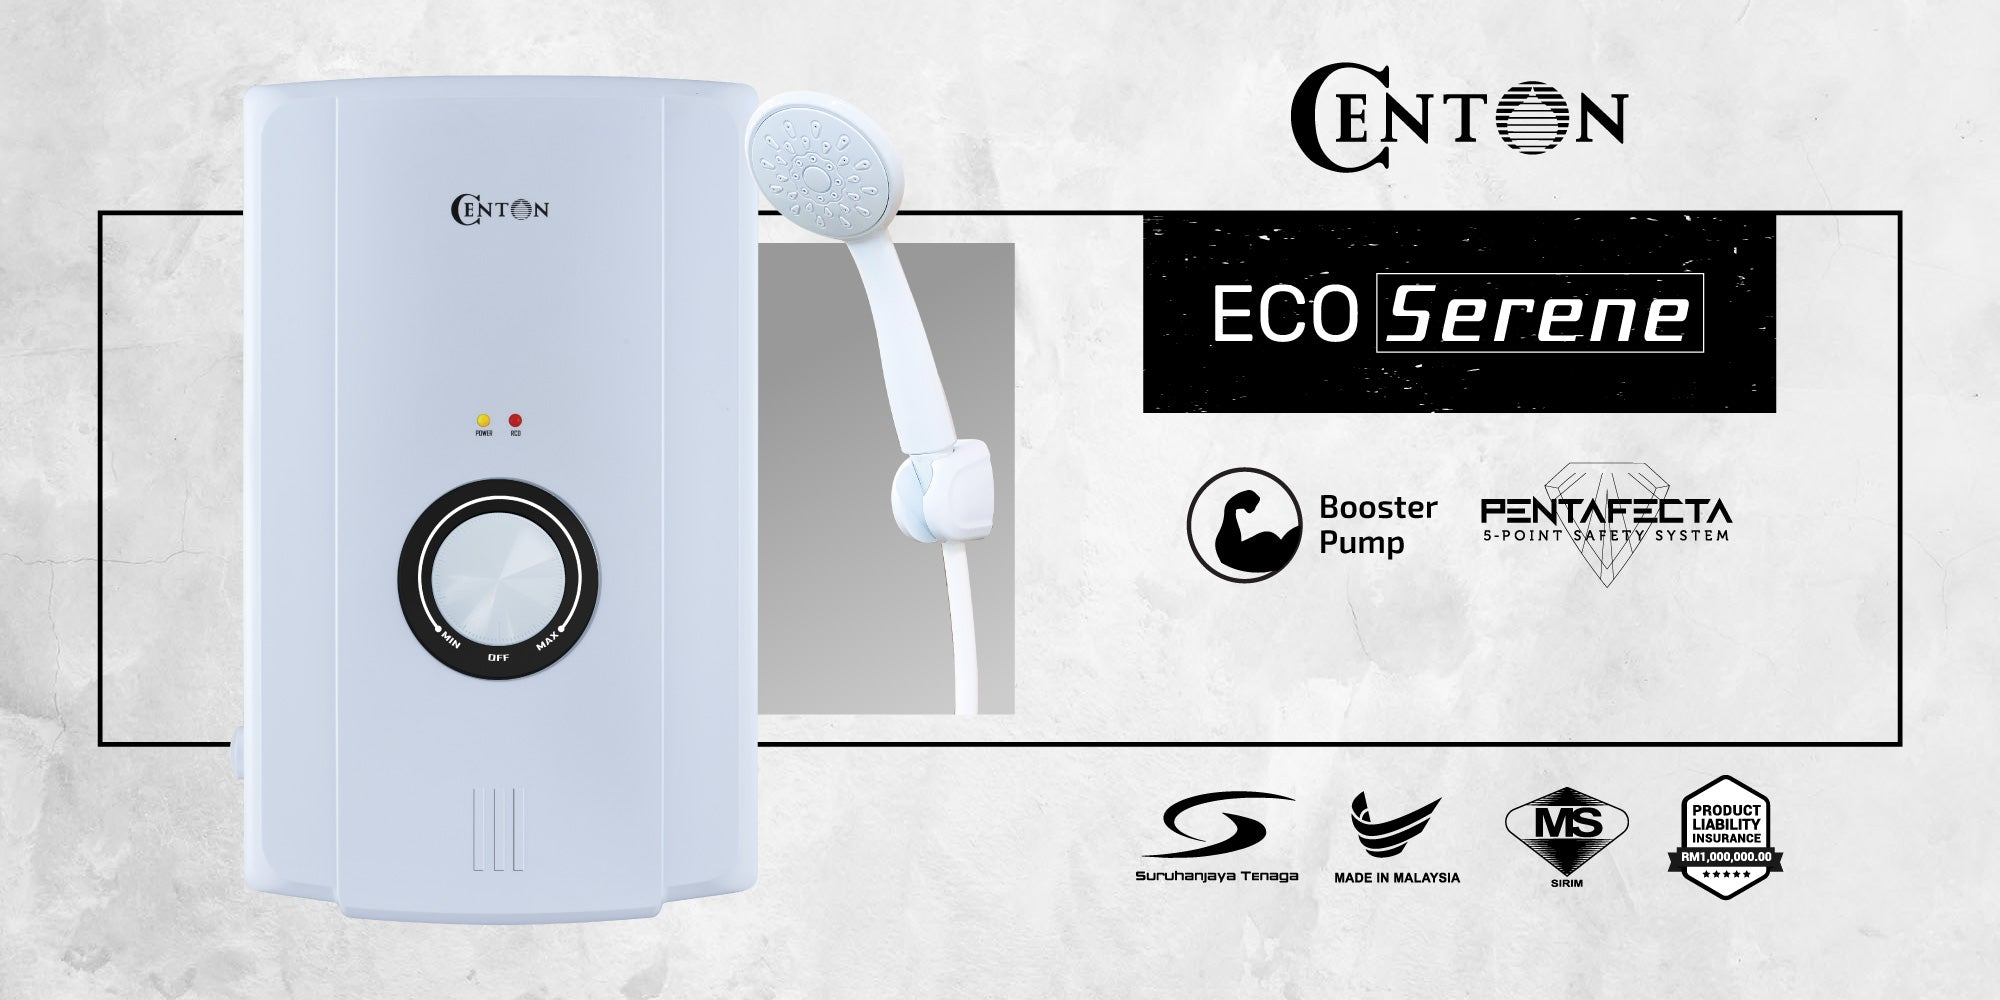 CENTON EcoSerene AC Instant Water Heater with AC Booster Pump